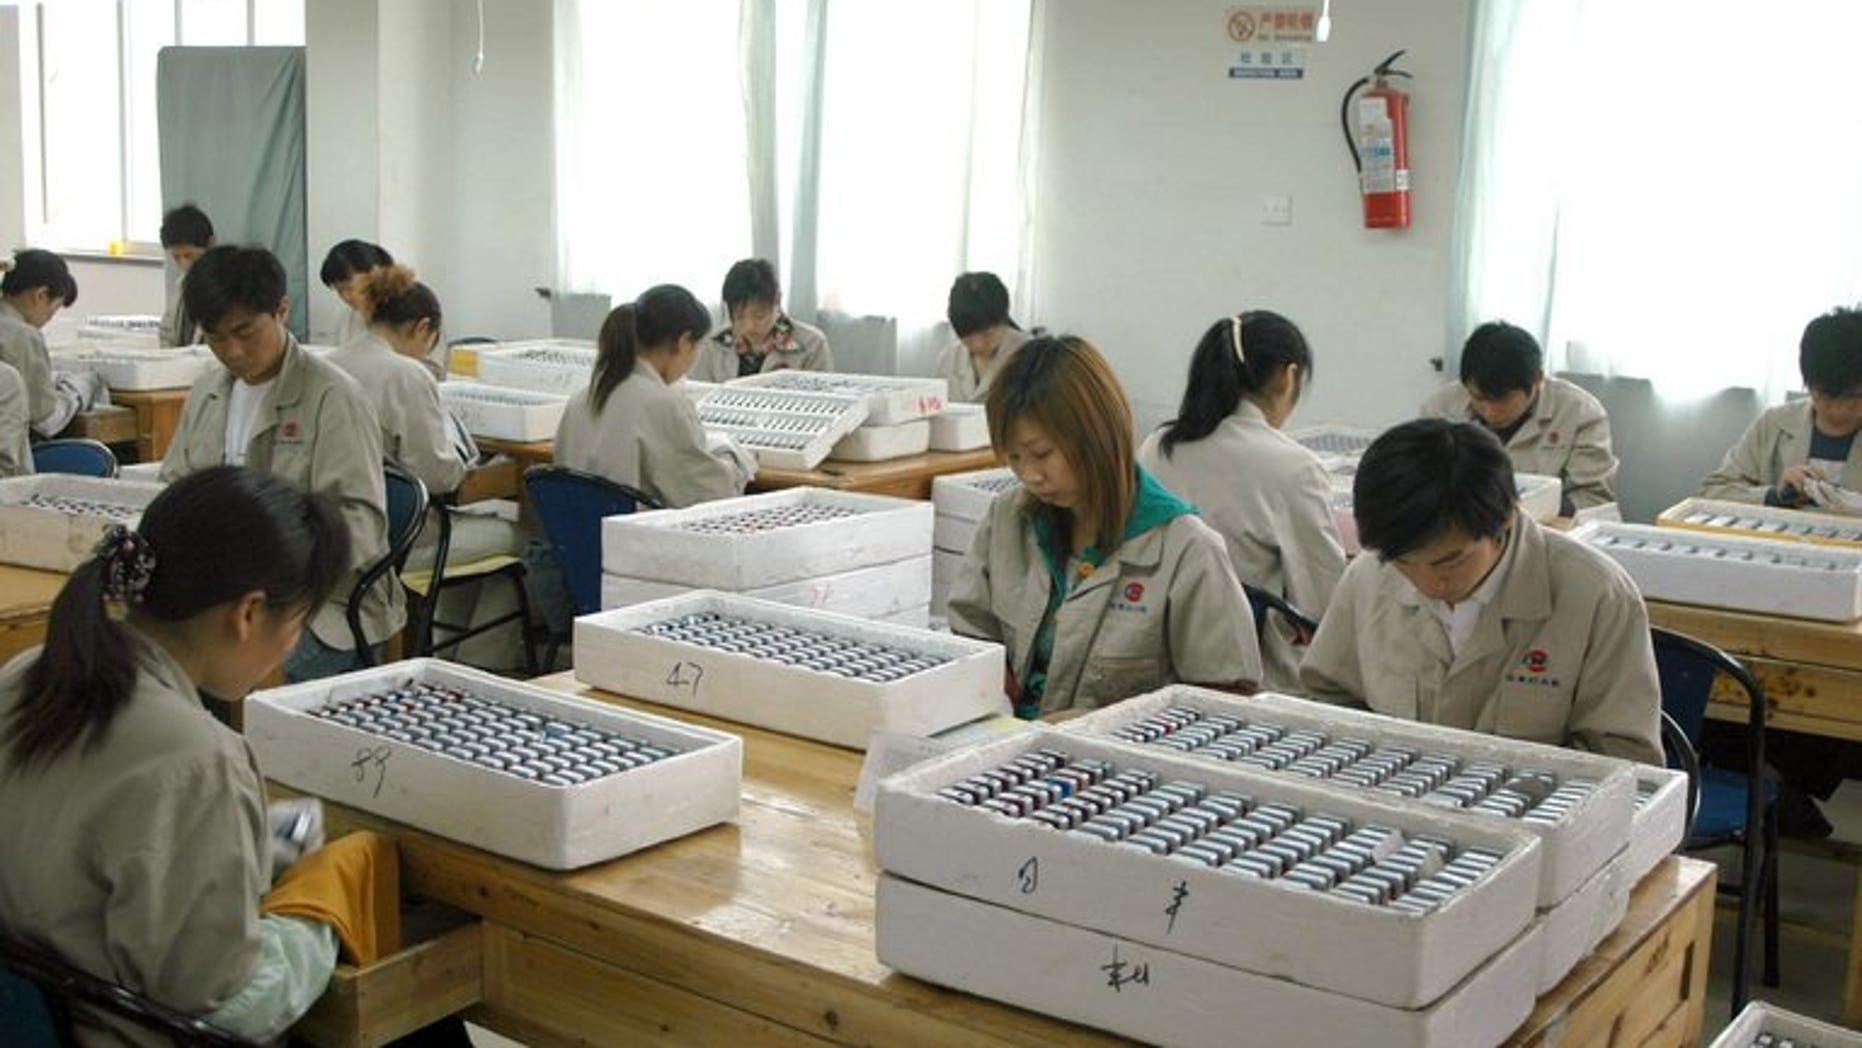 Workers assemble lighters at the Rifeng factory in Wenzhou, China's Zhejiang province in 2006. A former vice mayor of China's eastern city of Wenzhou was Friday sentenced to three years in jail for abuse of power in a land deal, state media reported.